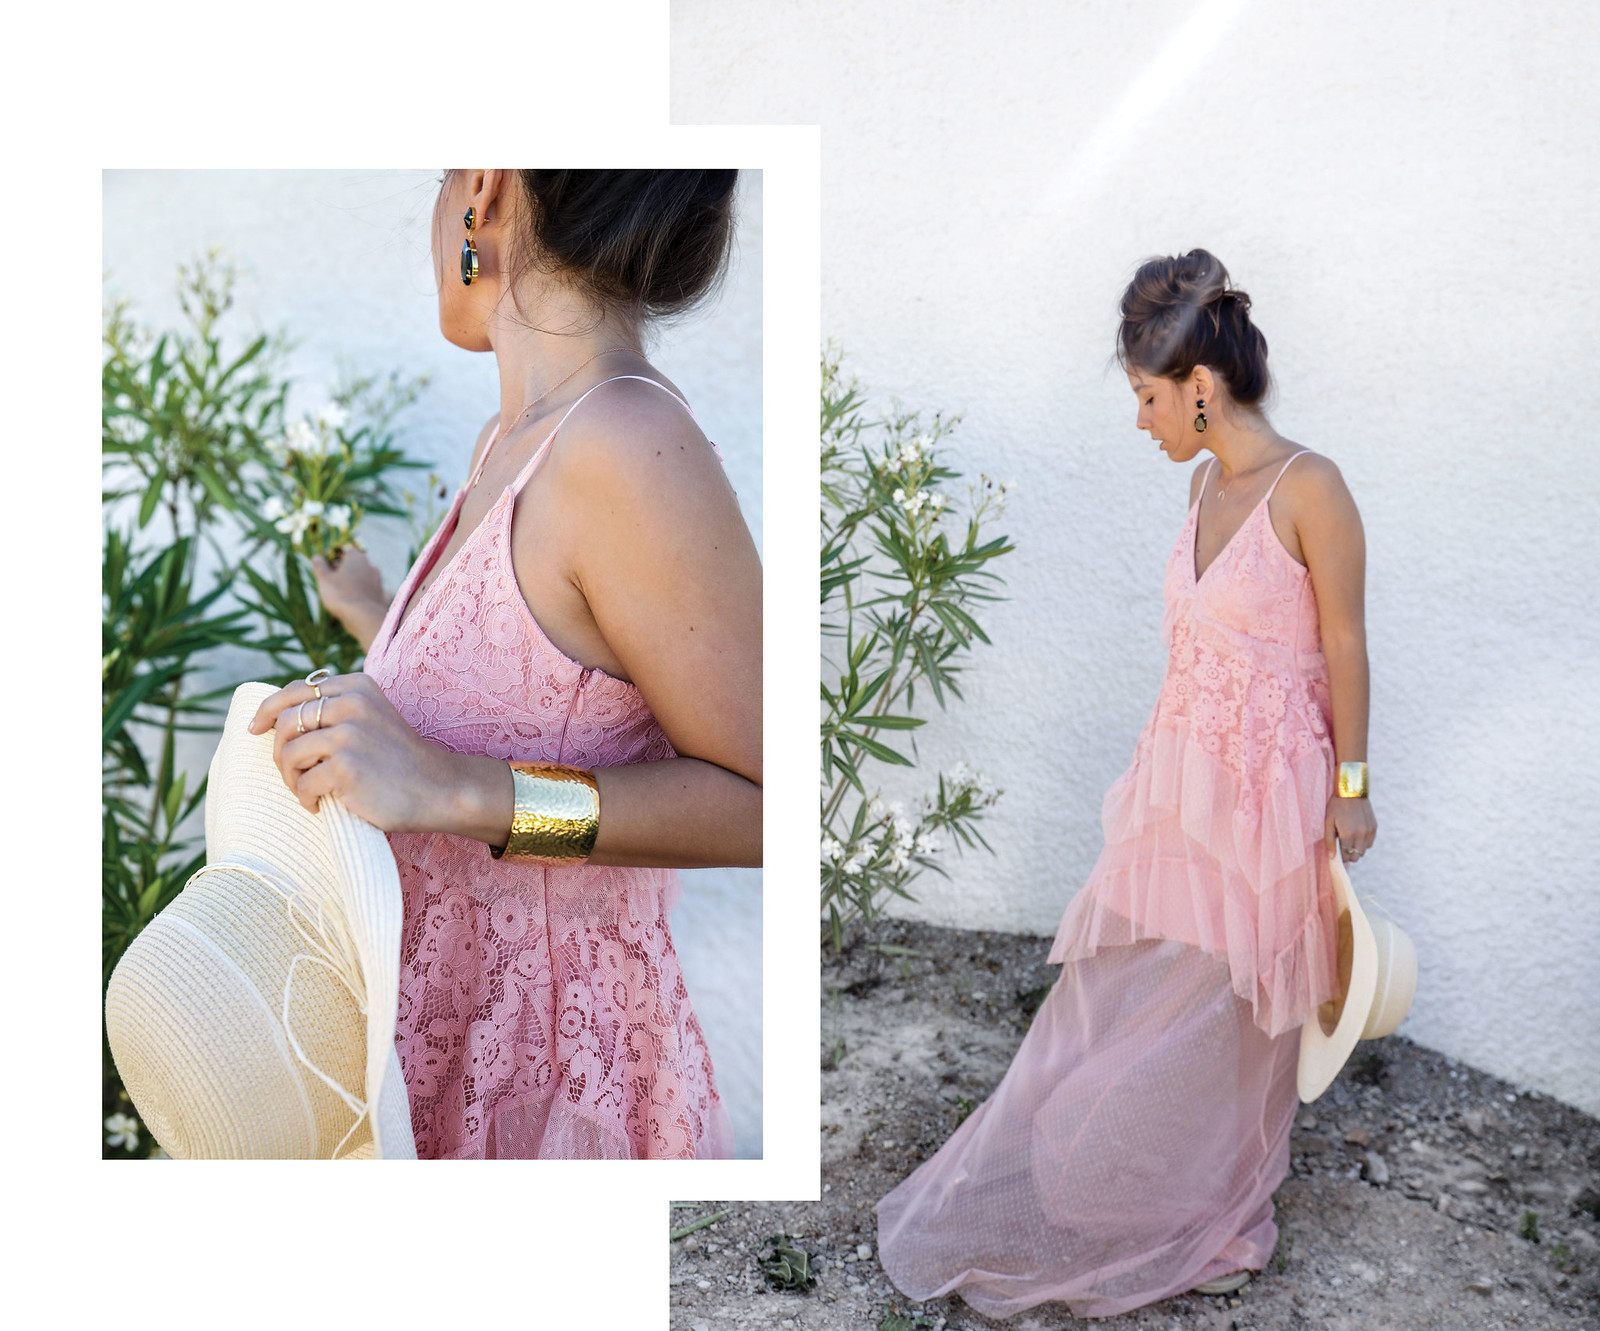 05_vestido_largo_rosa_para_verano_theguestgirl_influencer_noholita_collagevintage_sincerelyjules_ninauc_paulagonu_danity_paris_dress_ambassador_spain